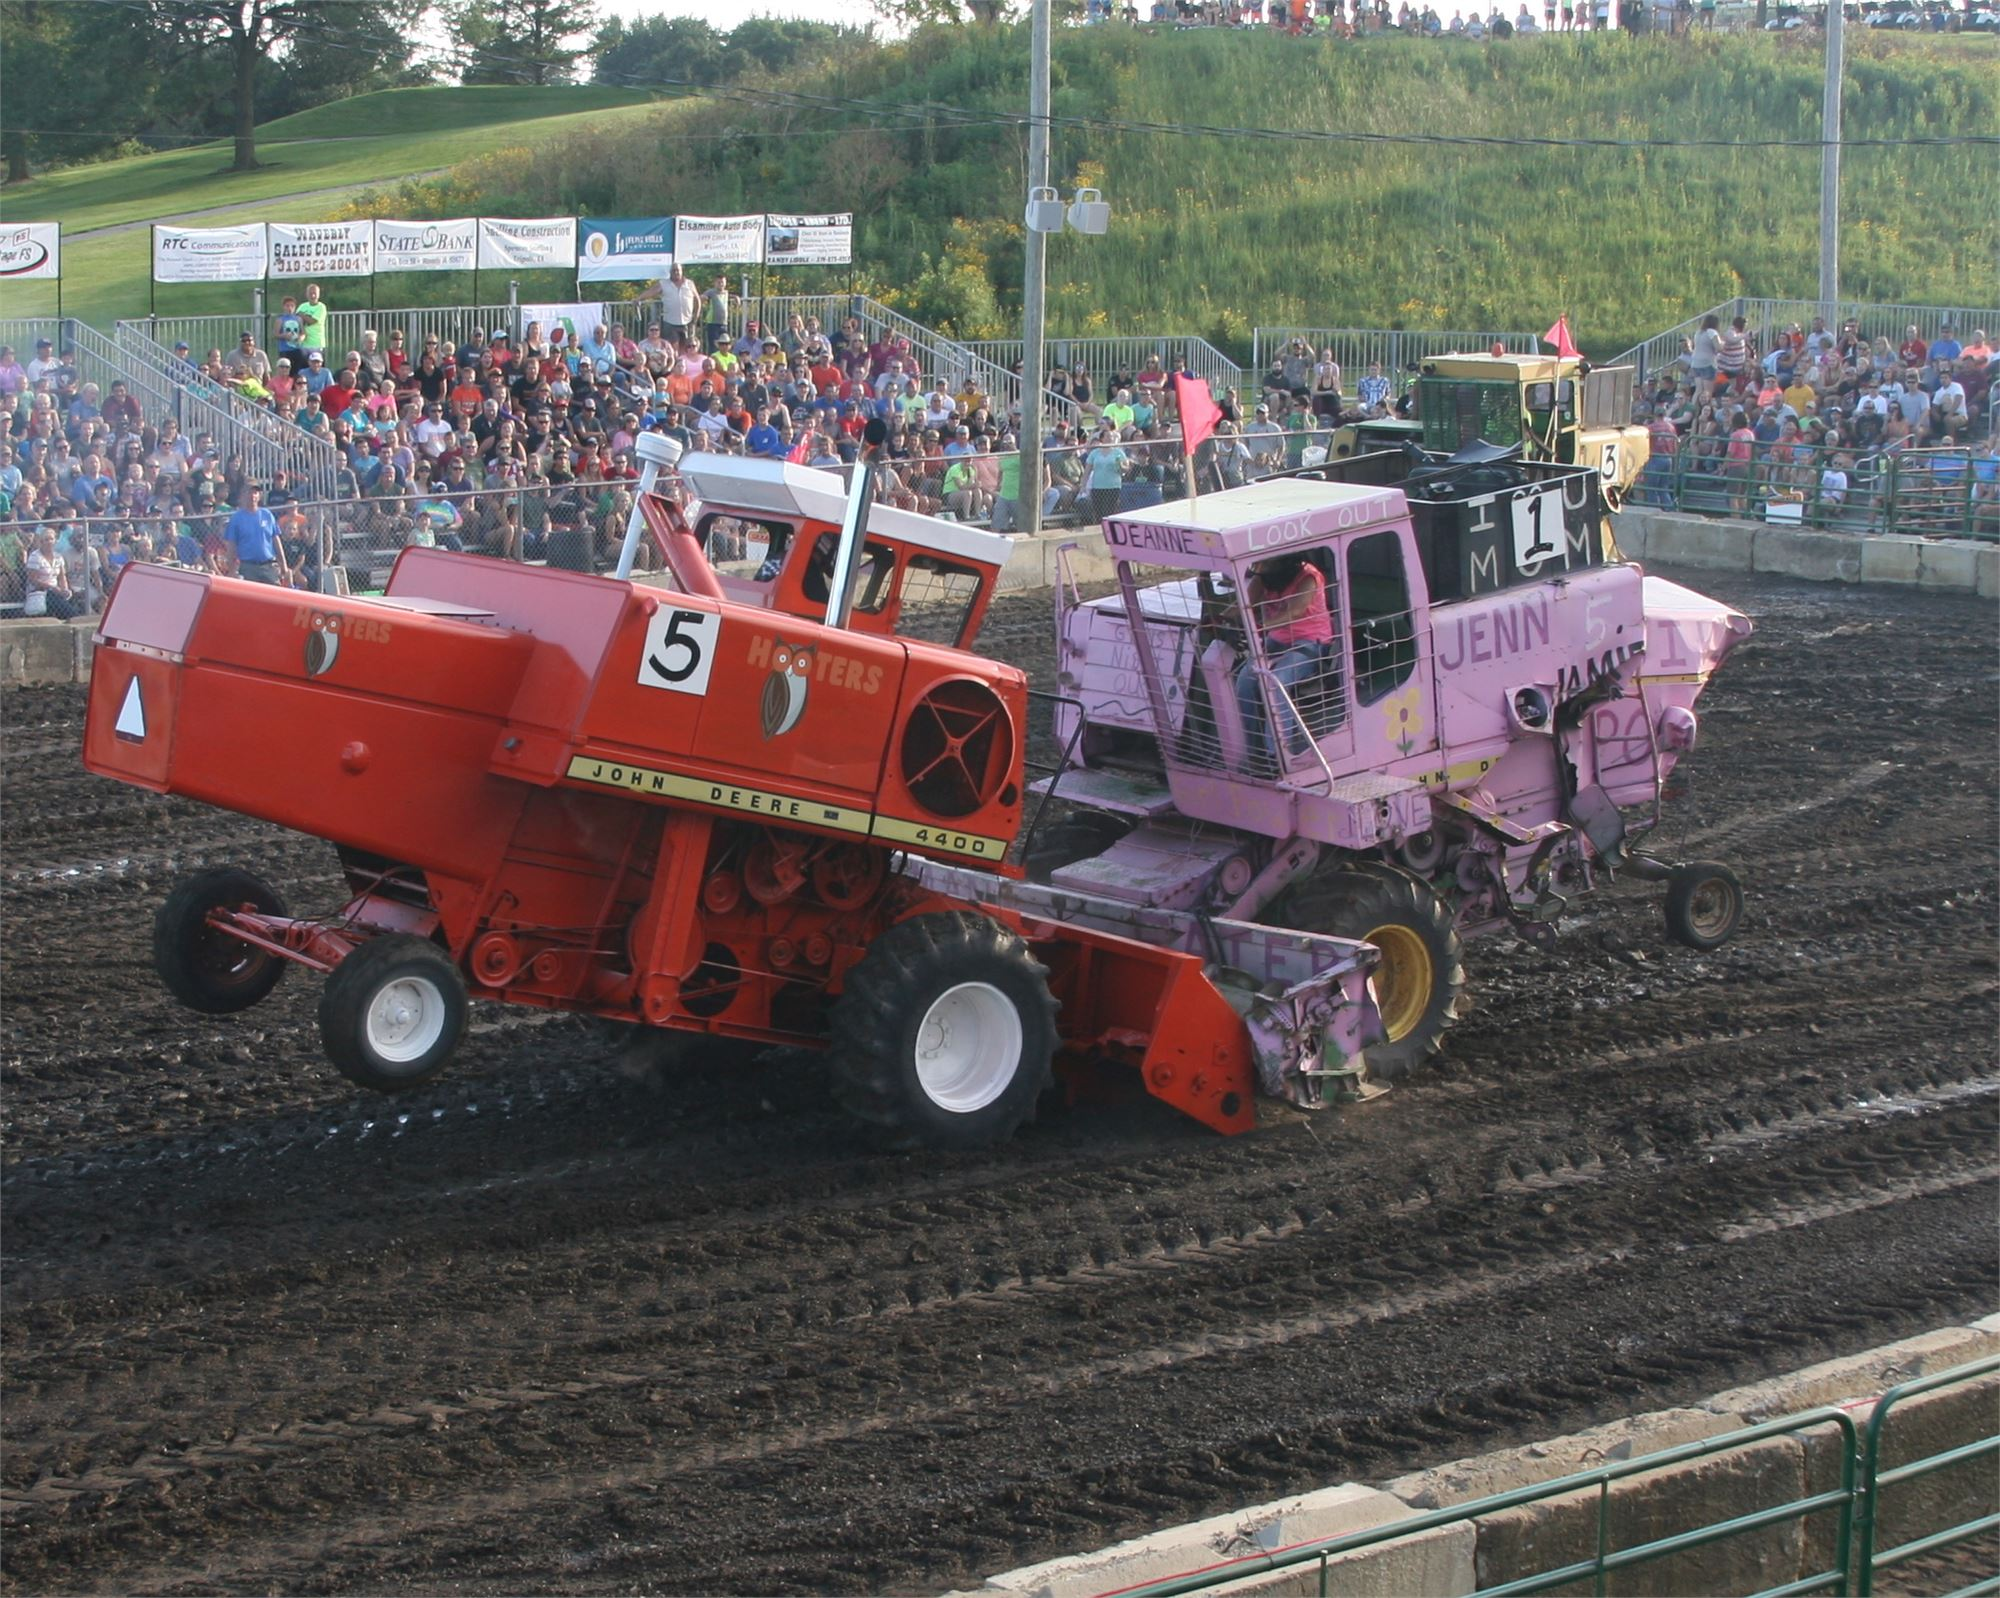 Combine Demolition Derby...Iowa's largest!